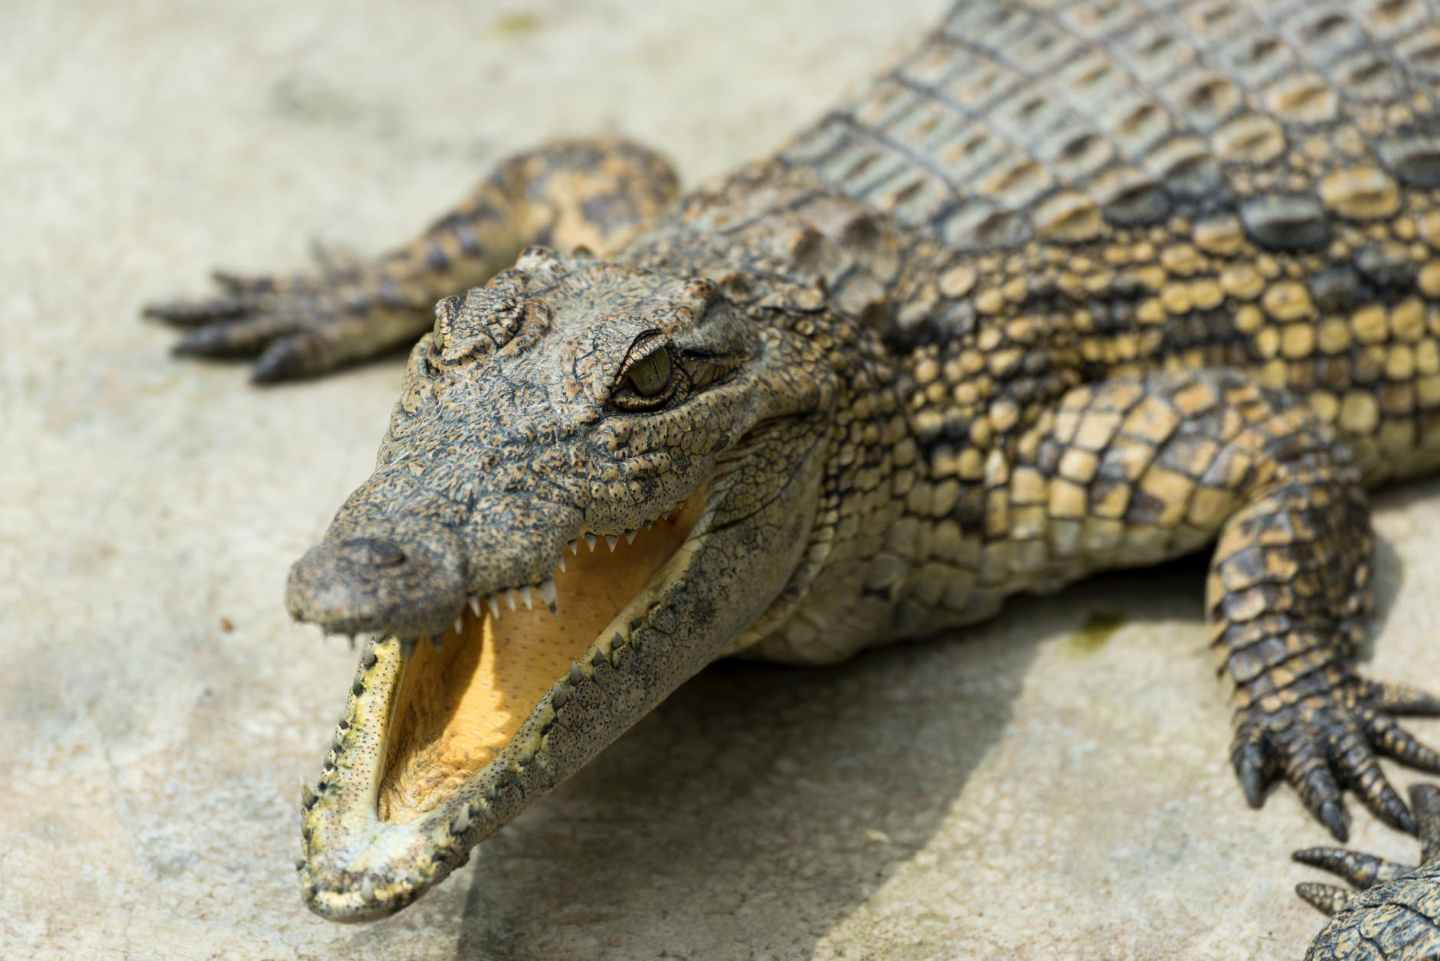 close up photography a crocodile with its mouth open